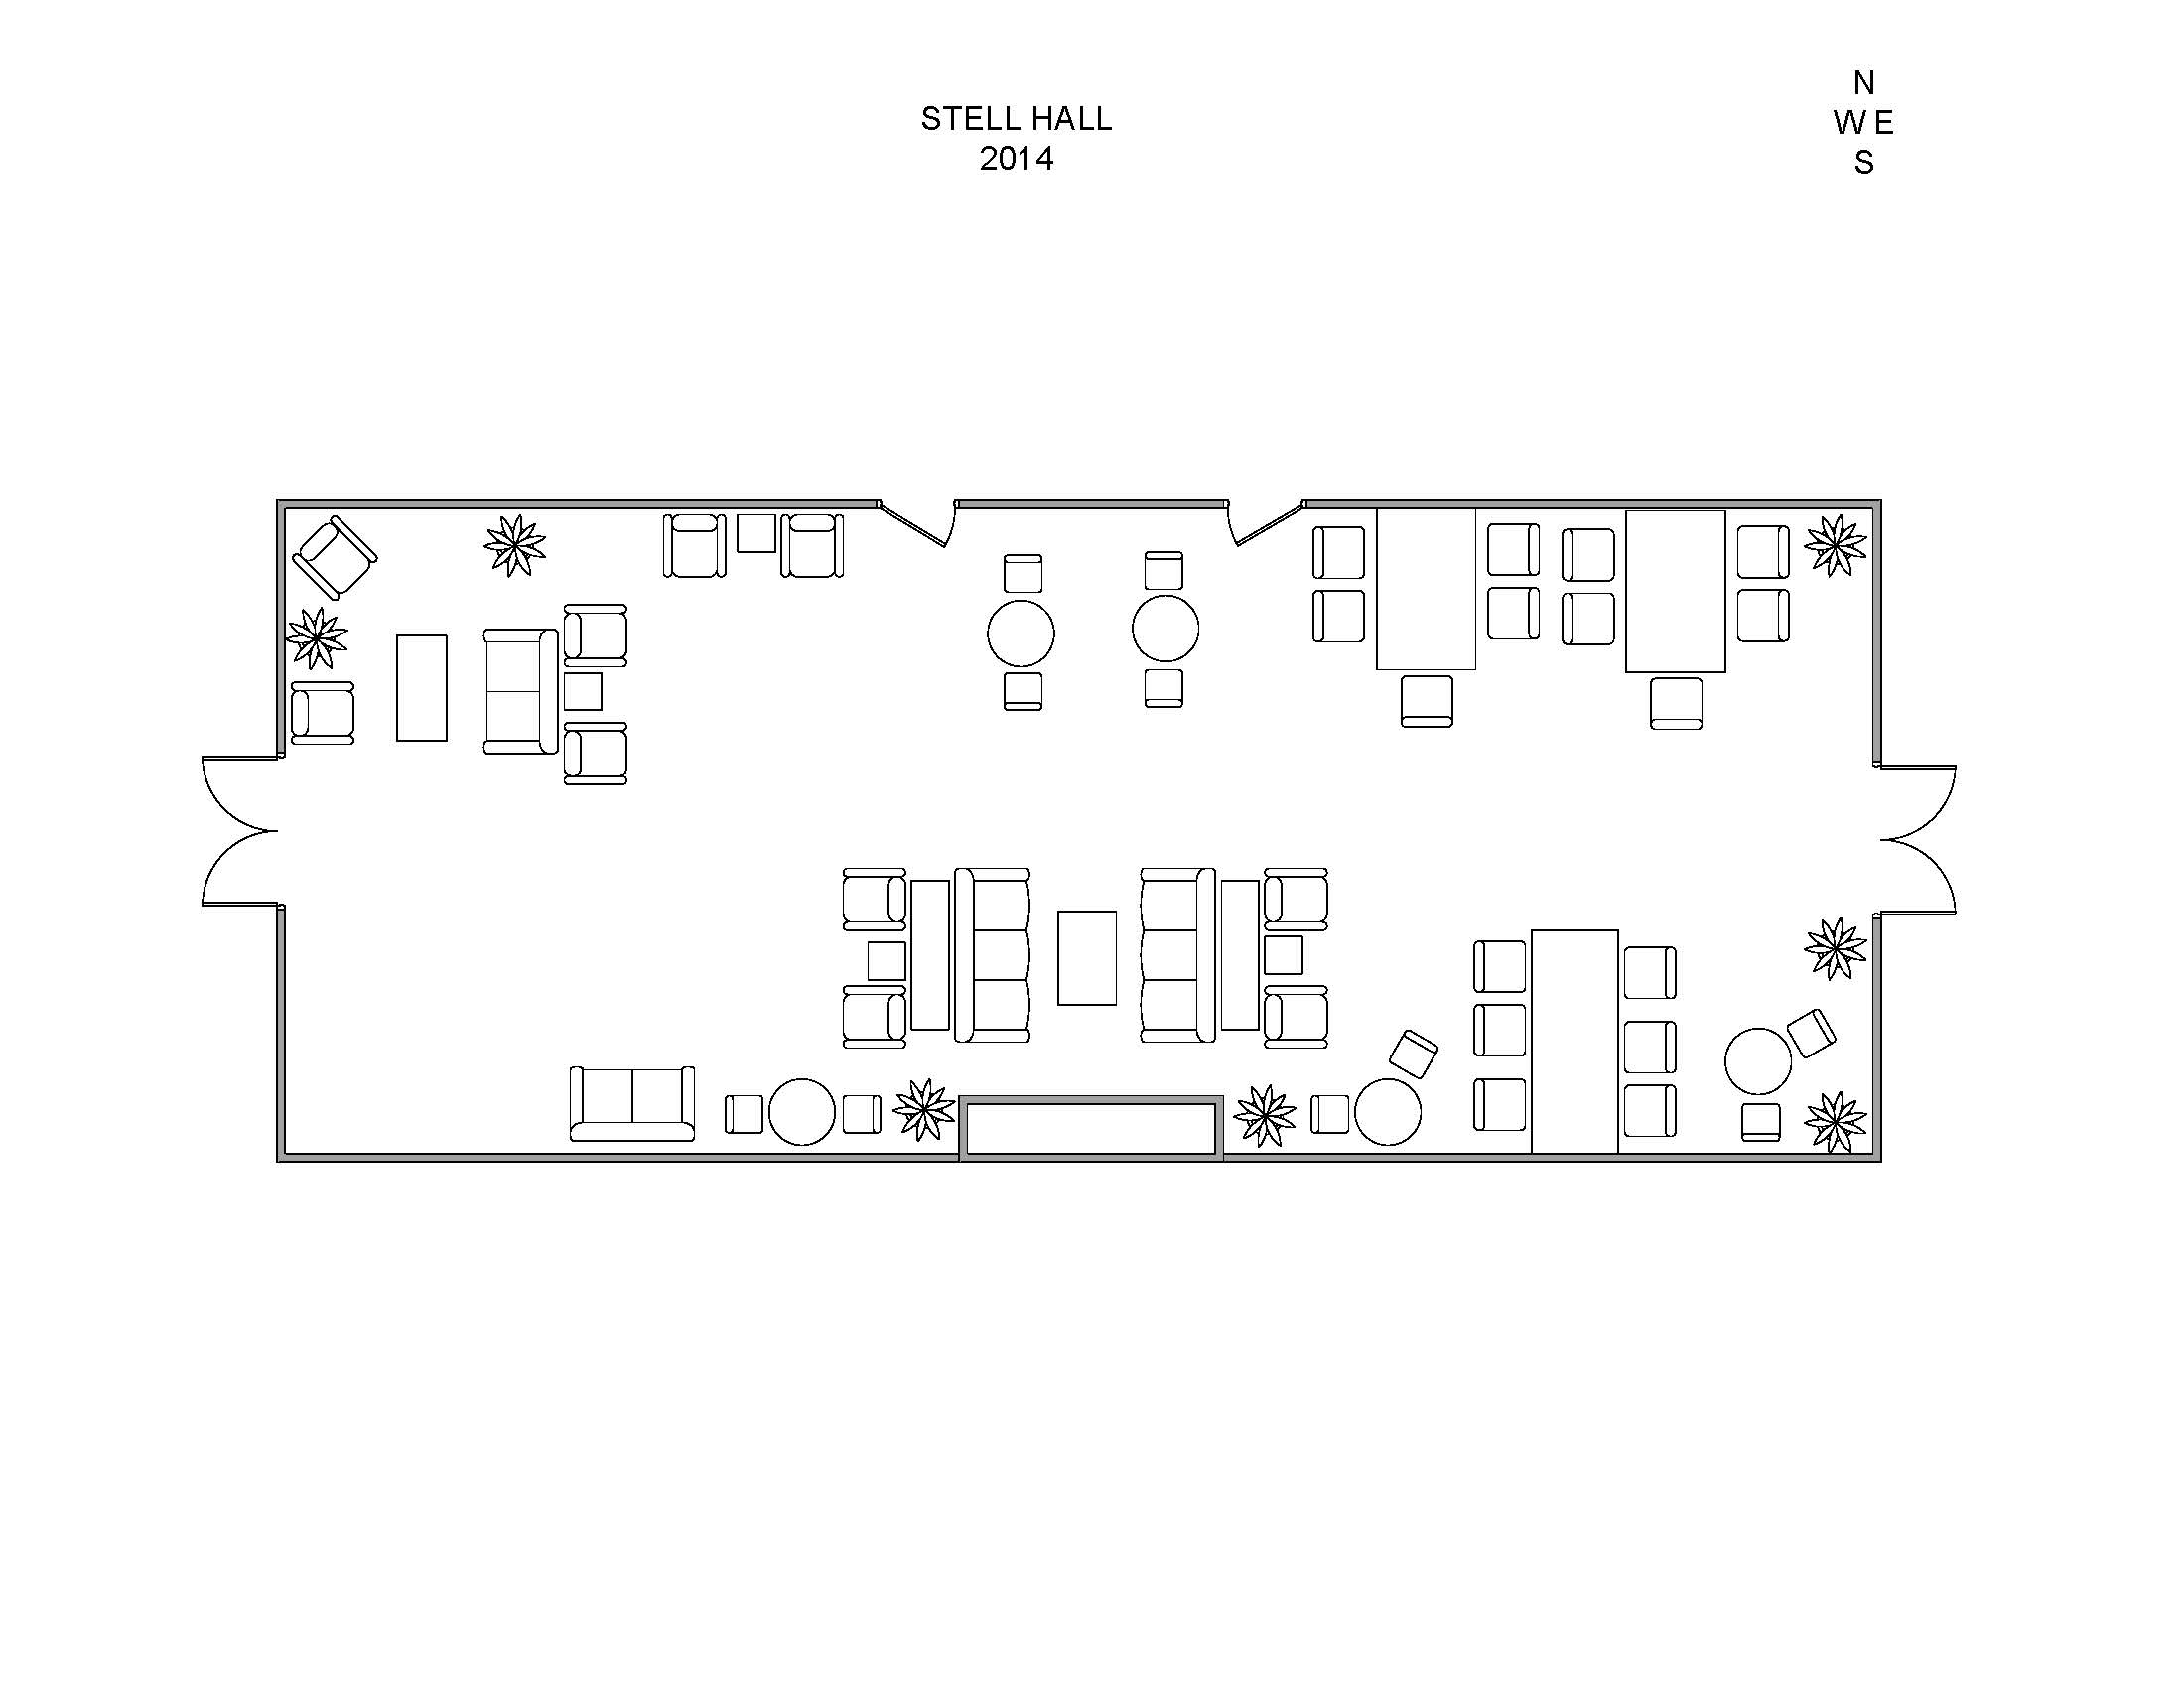 Tuck Events Amp Facilities Stell Hall Diagrams